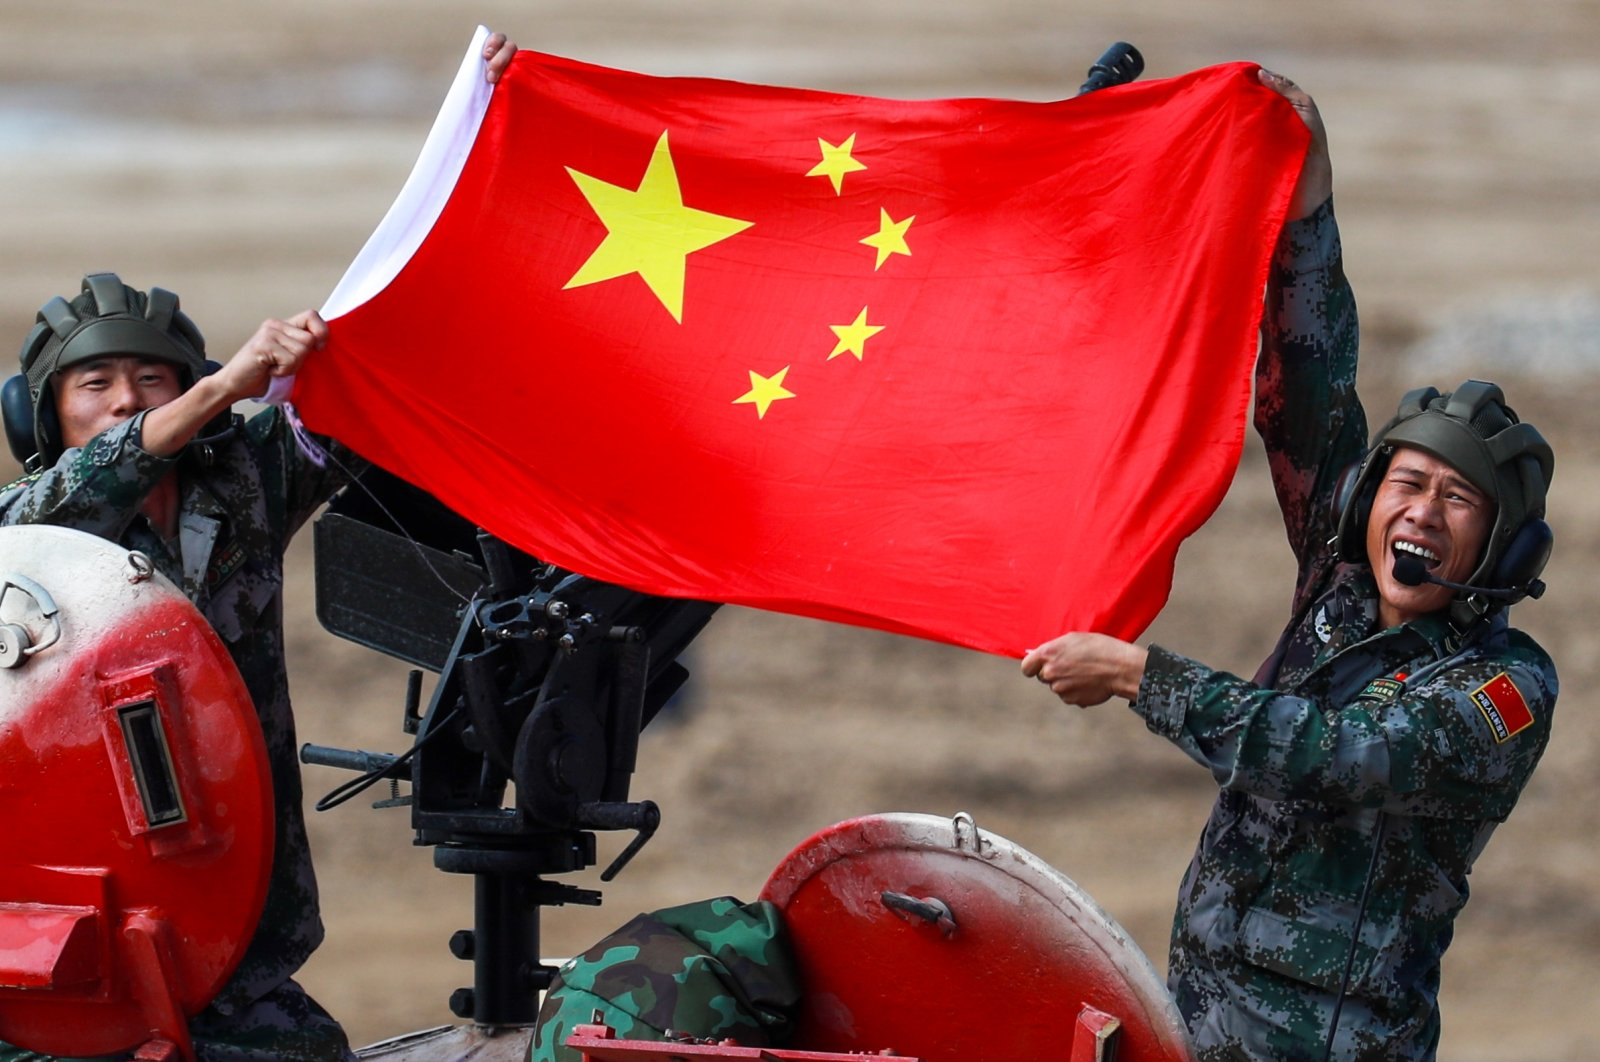 People's Liberation Army (PLA) soldiers pose with a Chinese flag on a TYPE 96B tank during the Tank Biathlon Contest at the 2021 International Army Games at a military training ground in Alabino, Moscow Region. (Sergei Fadeichev / TASS via Reuters)